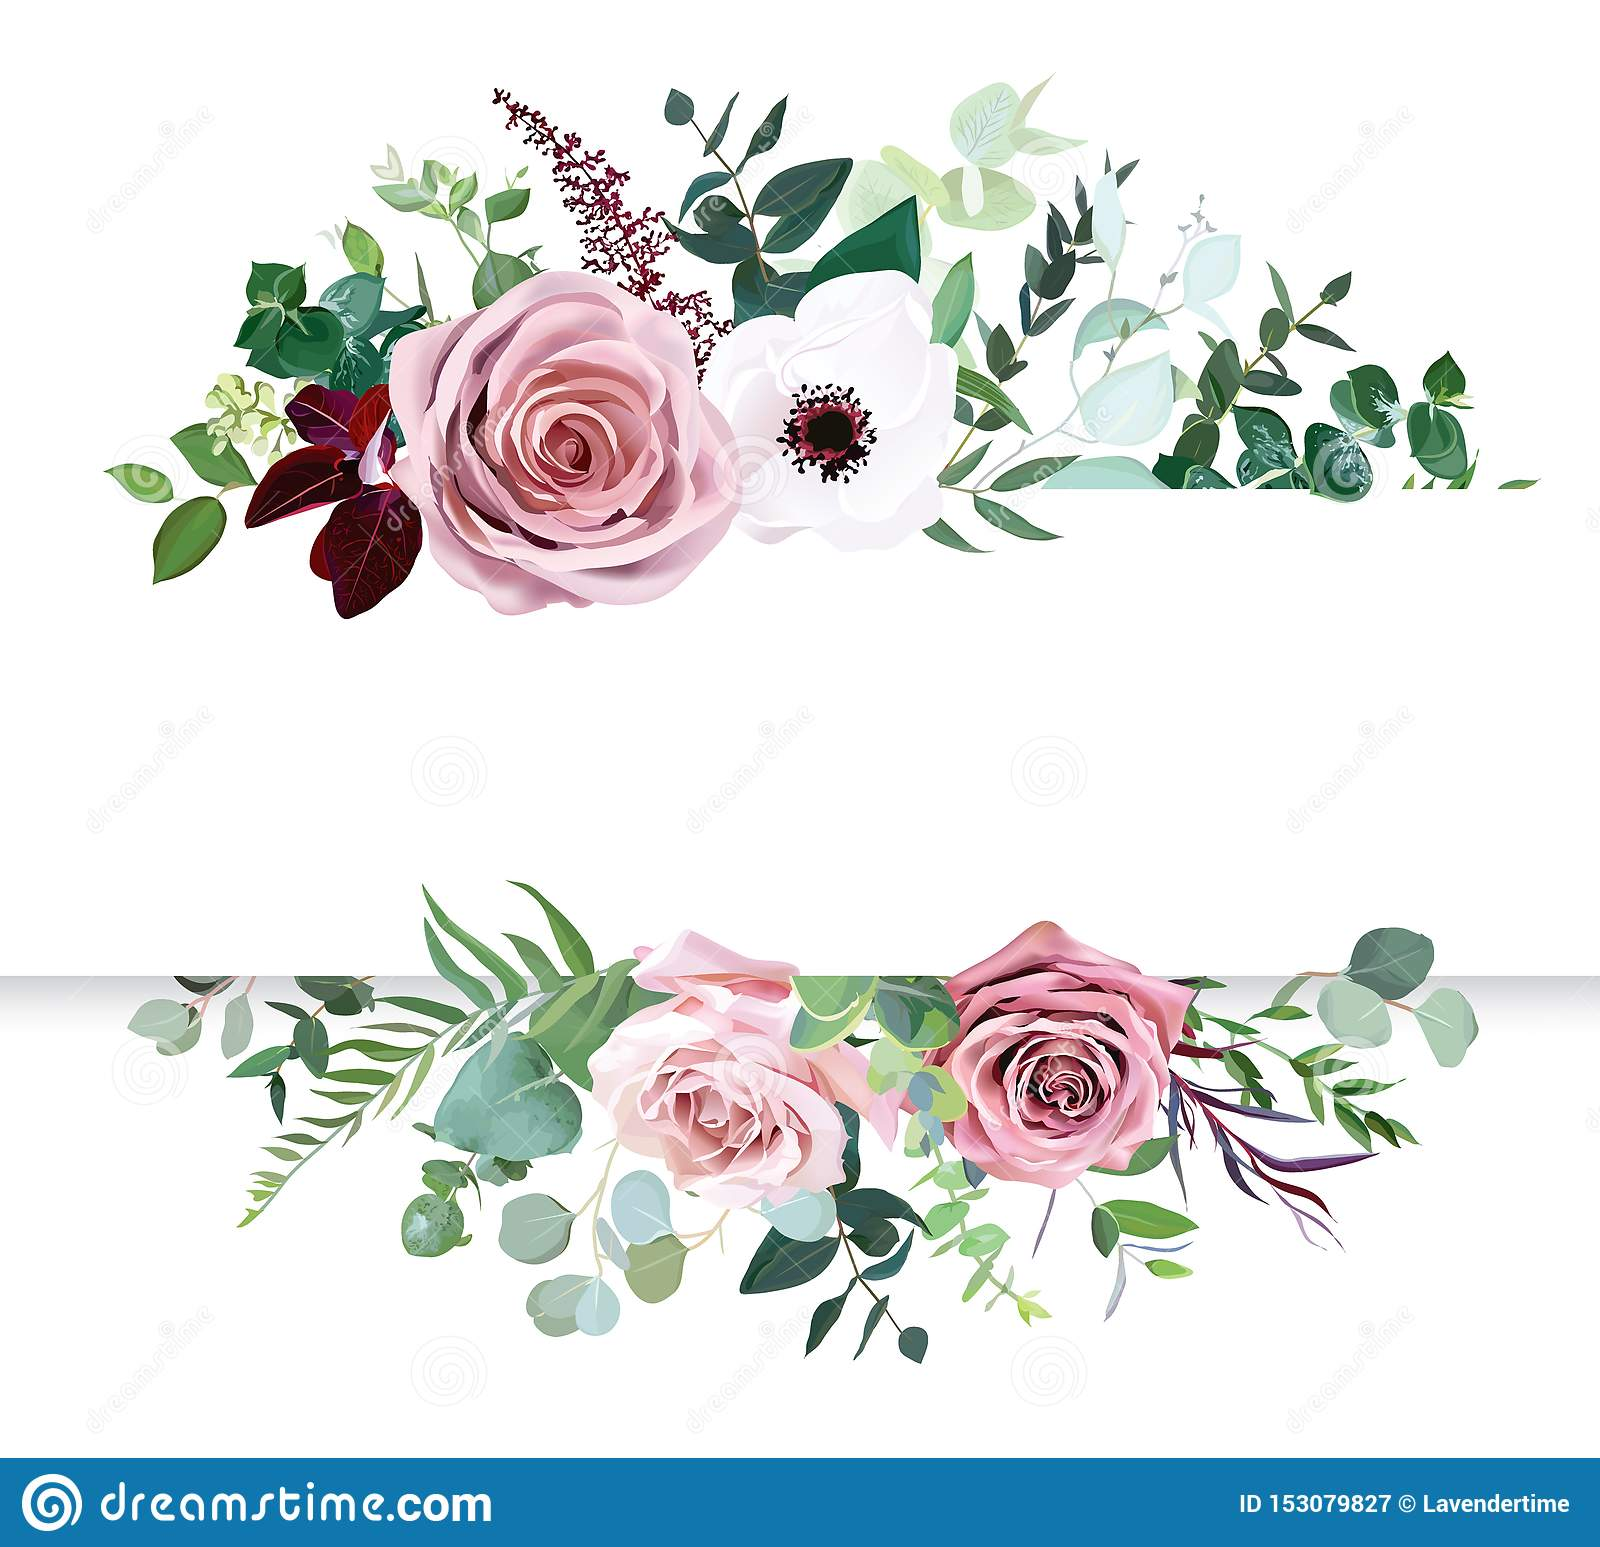 Dusty pink rose, pale flowers, white anemone horizontal botanical vector design banner